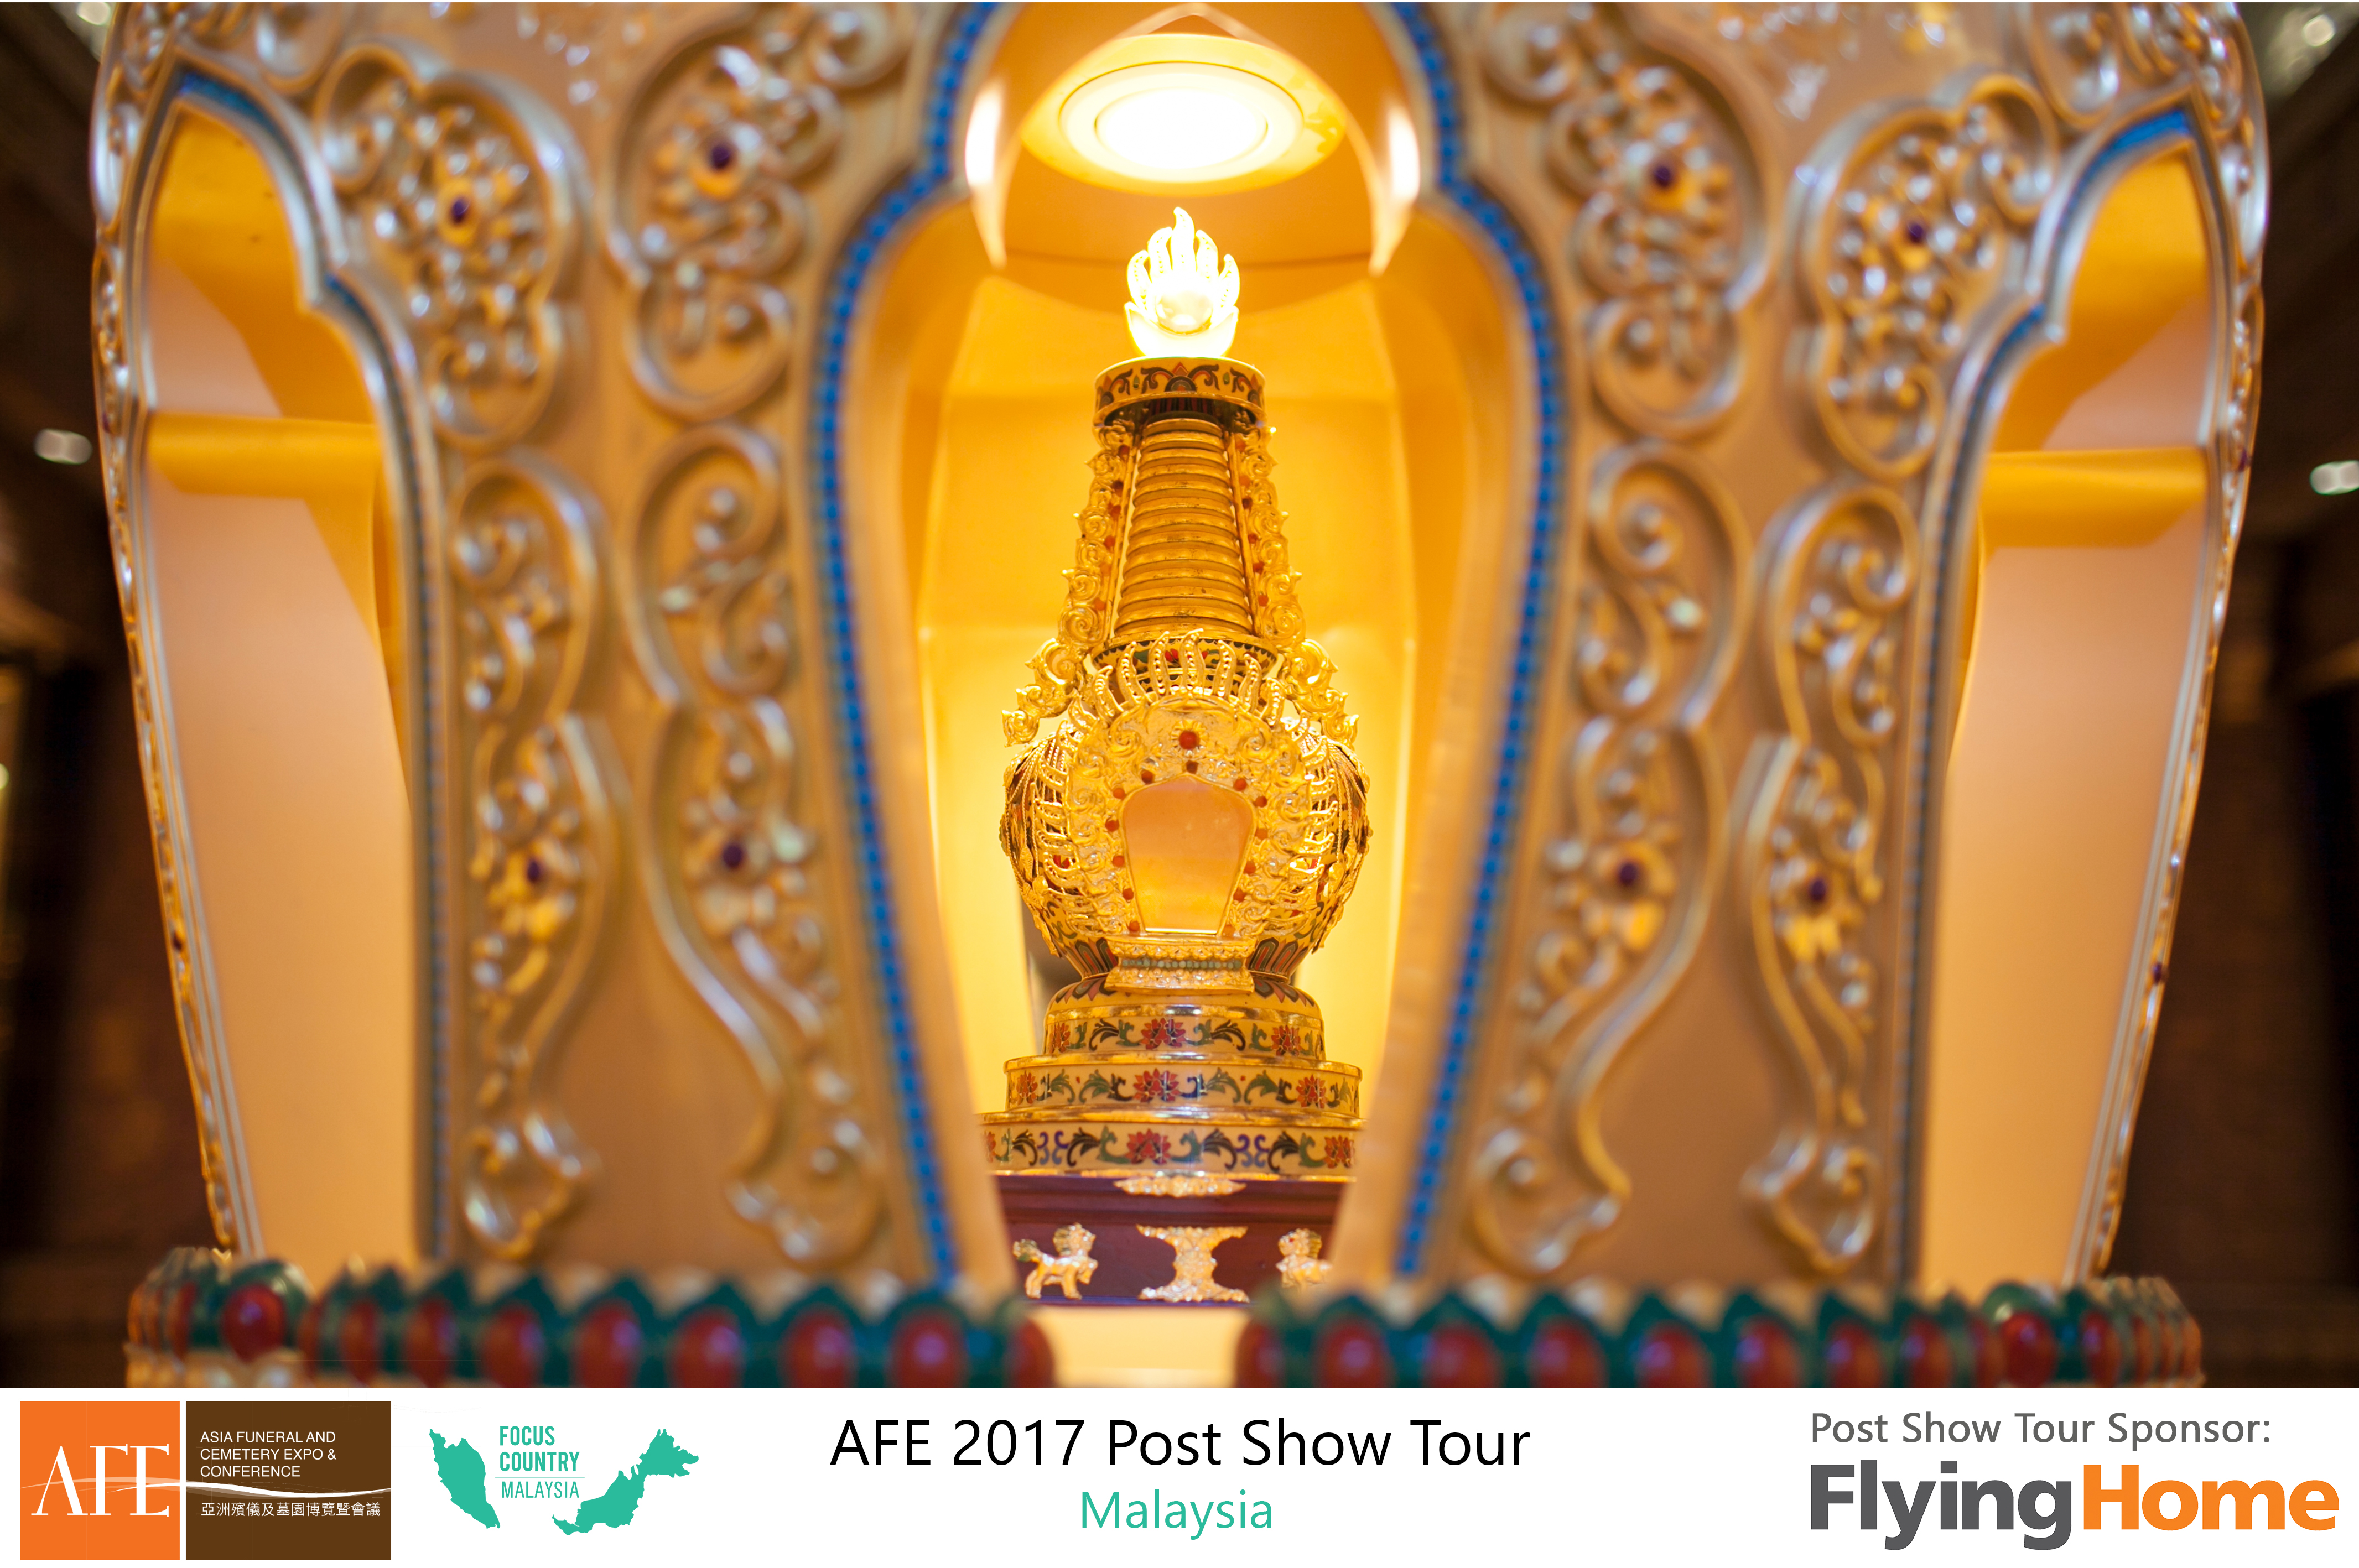 AFE Post Show Tour 2017 Day 2 - 21